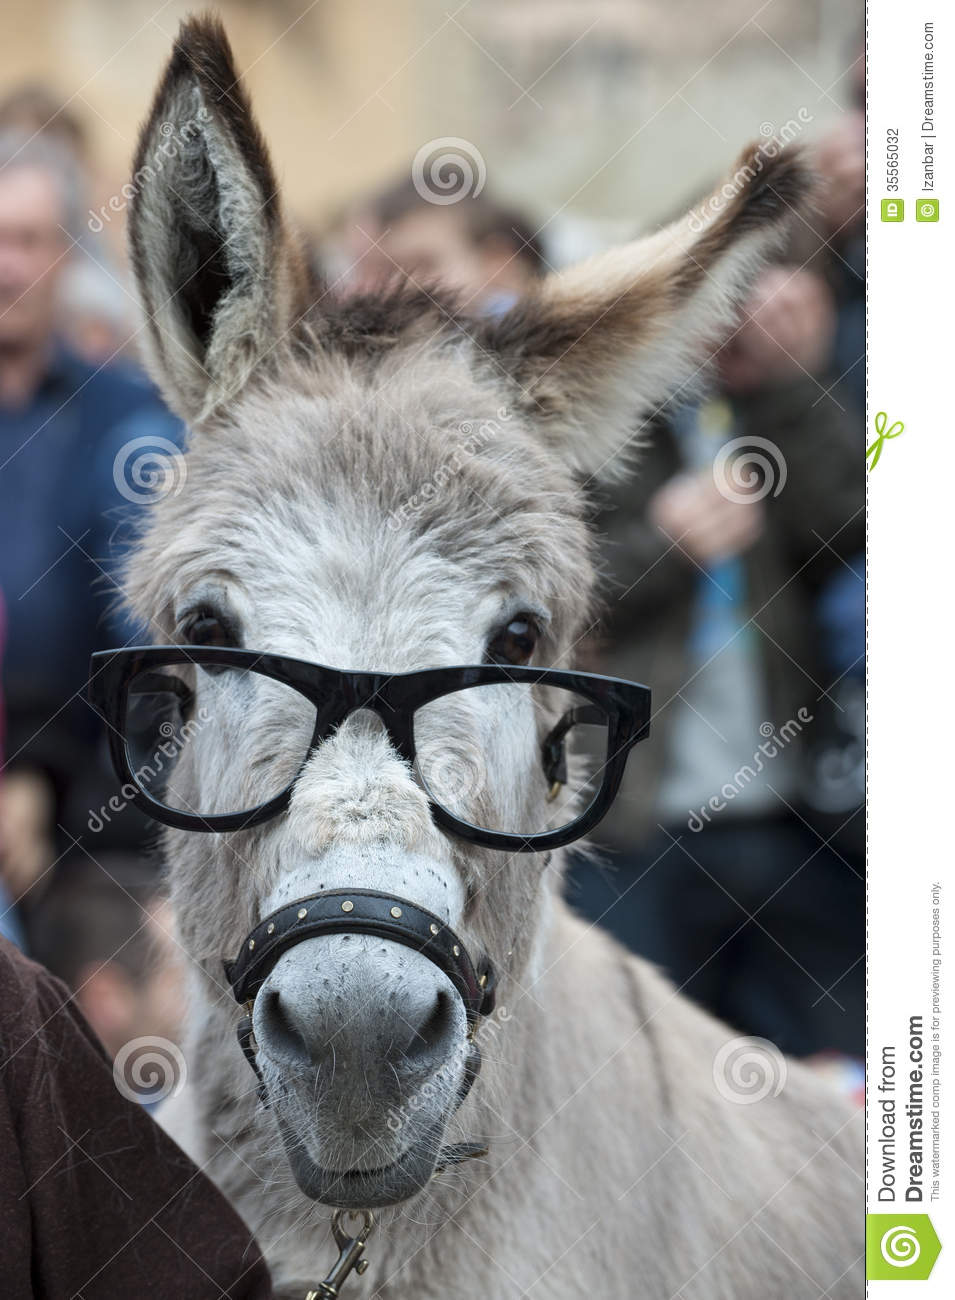 Donkey With Glasses Stock Photography - Image: 35565032